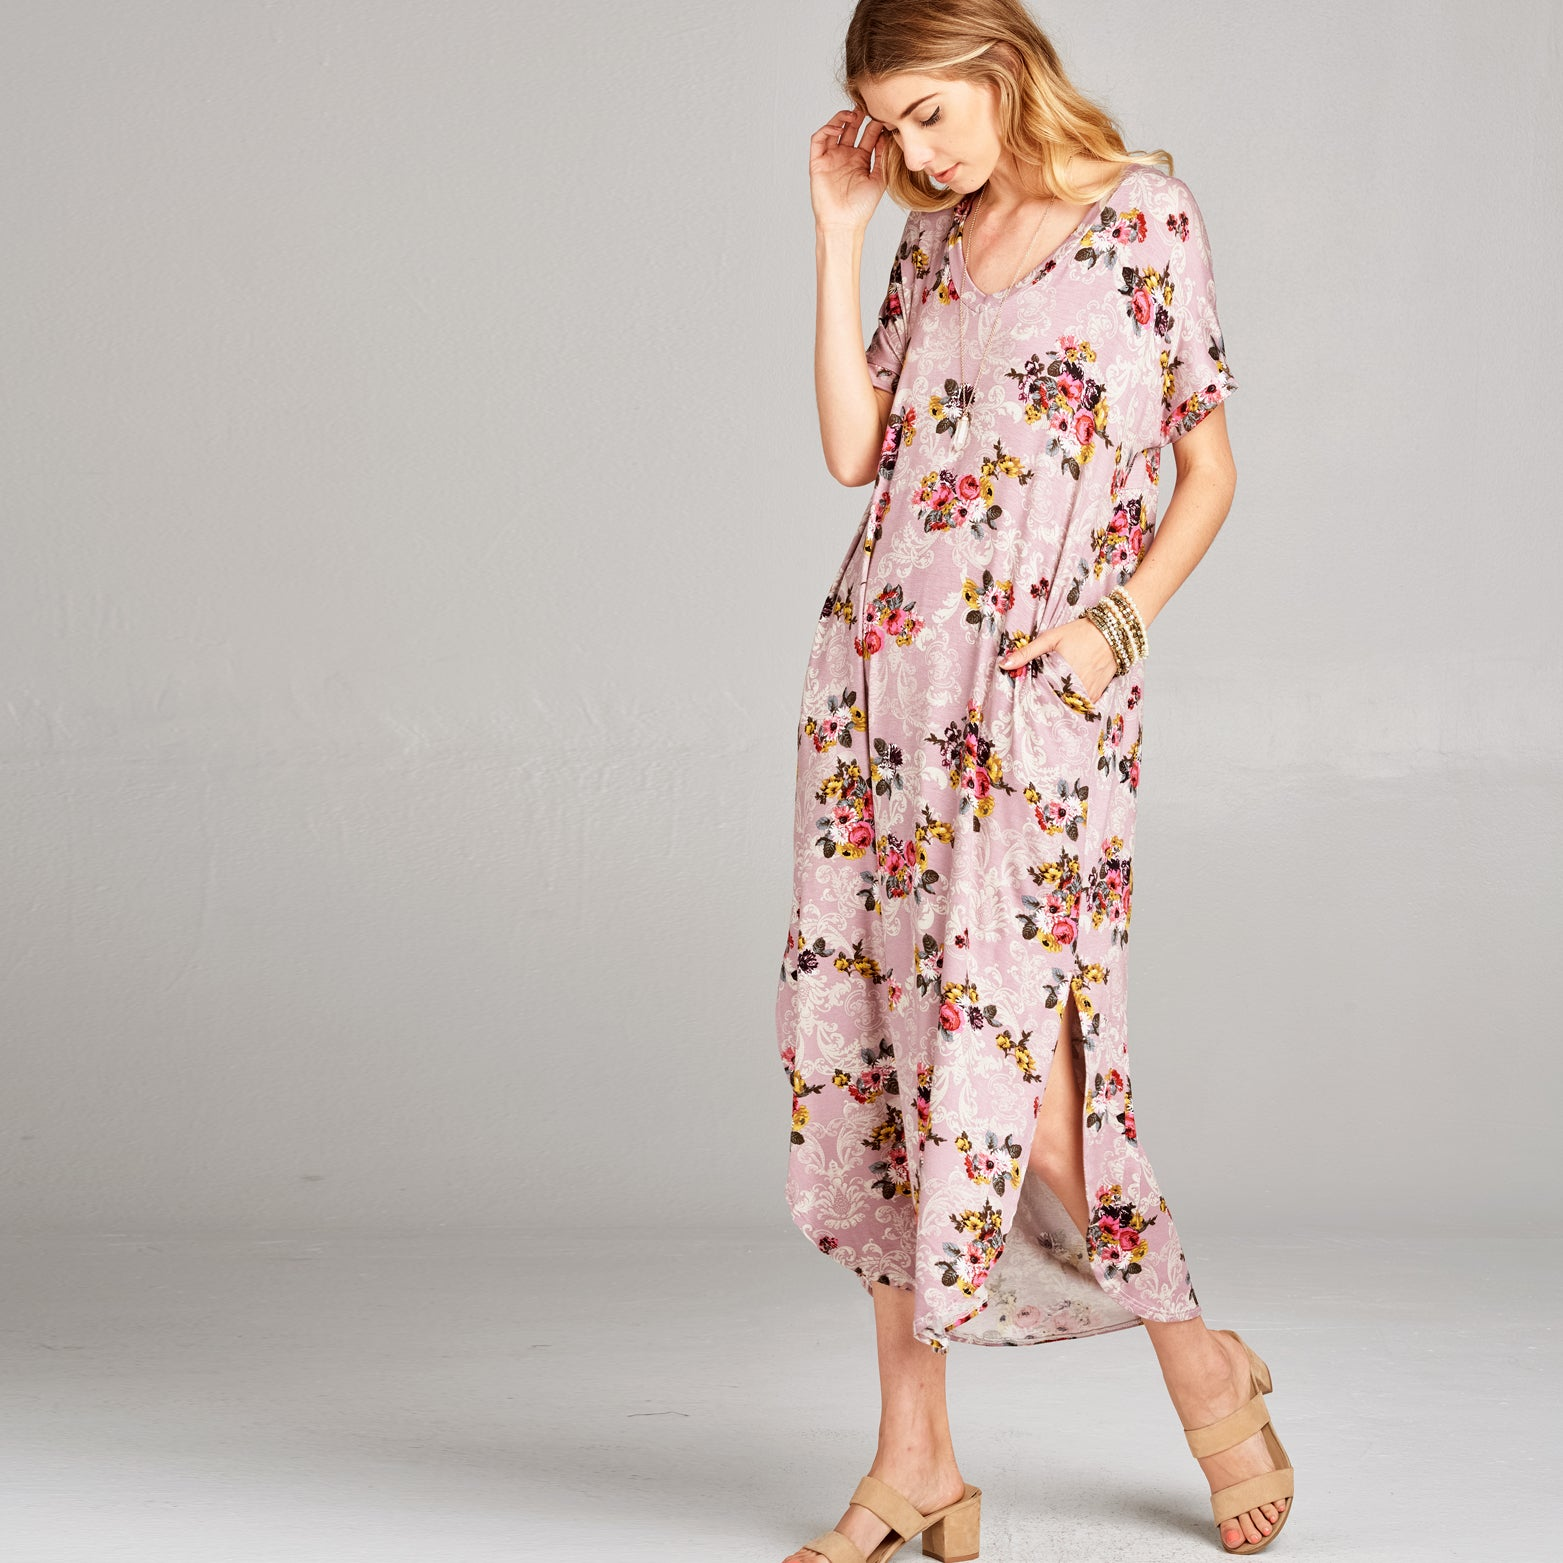 RL Damask Mauve Maxi Dress